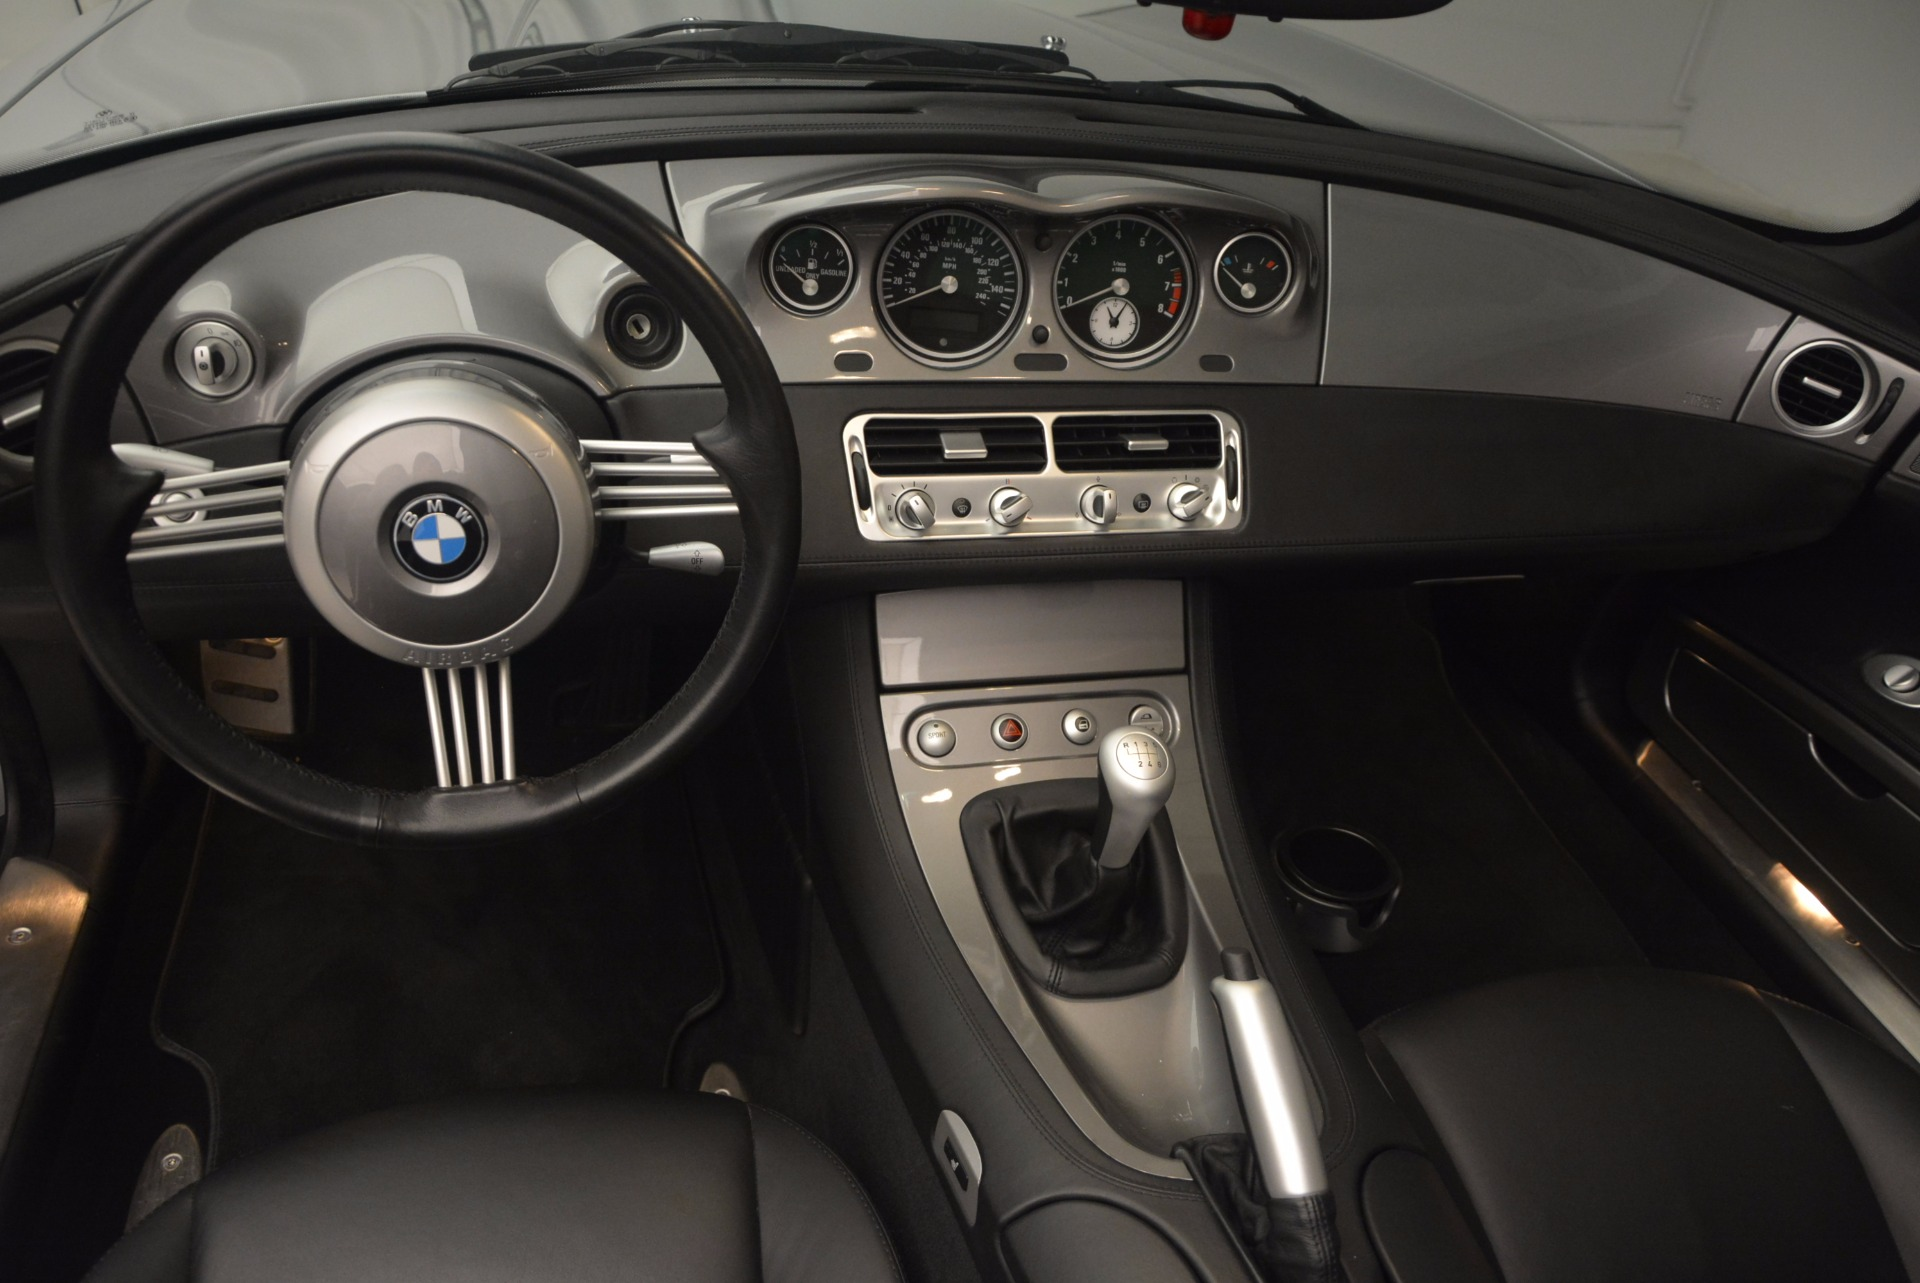 Used 2001 BMW Z8  For Sale In Greenwich, CT. Alfa Romeo of Greenwich, 7221 1293_p33